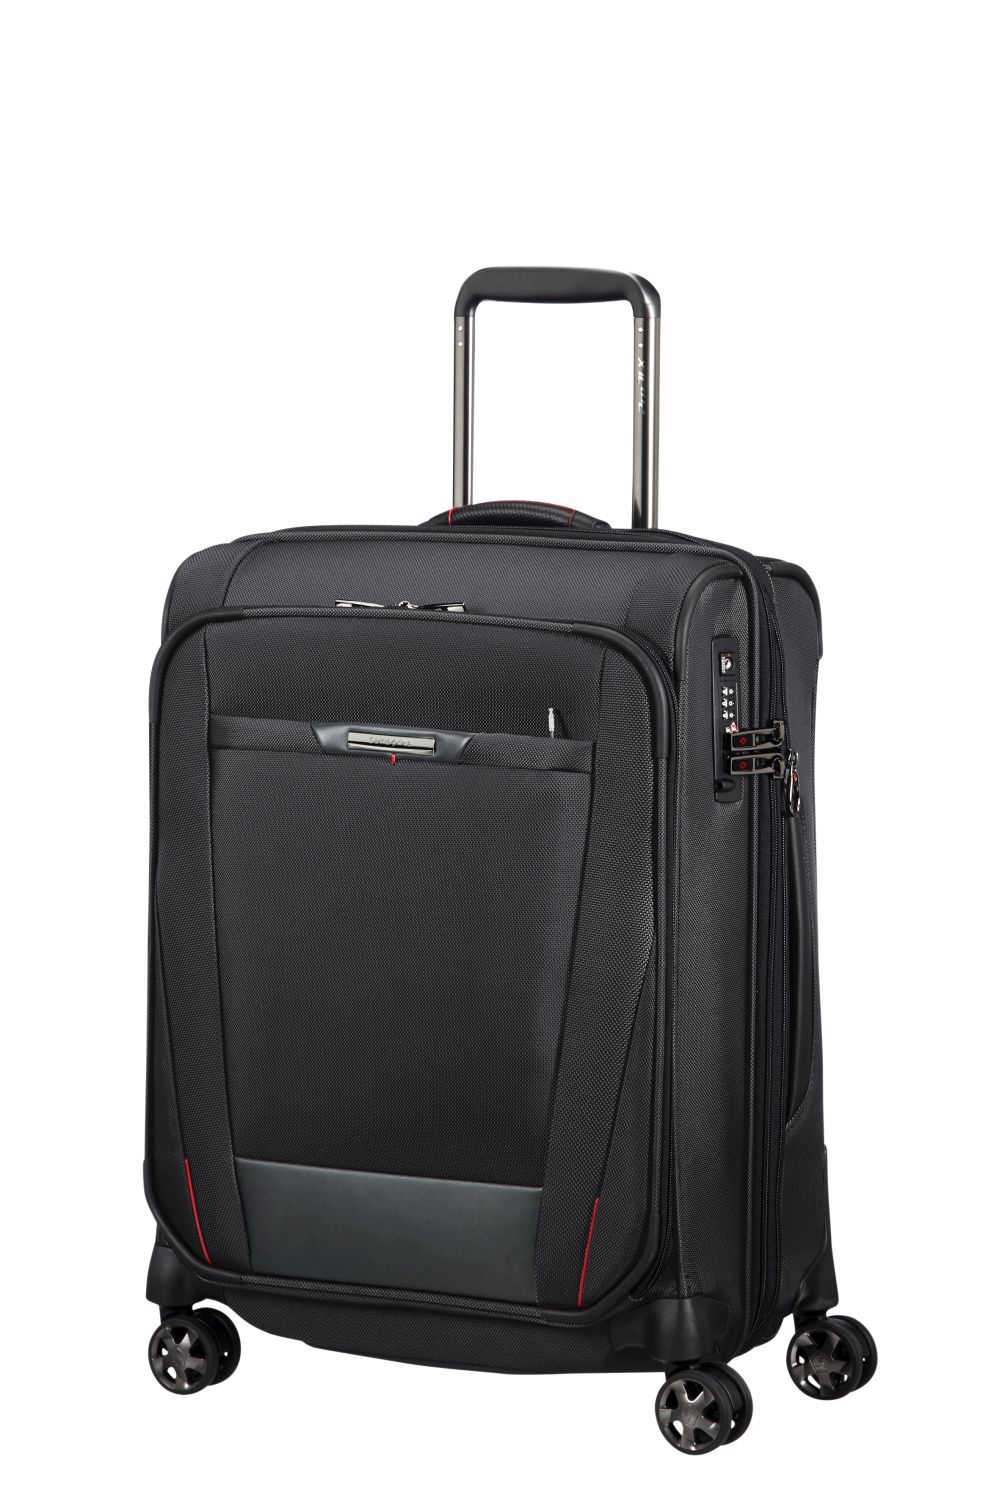 samsonite pro dlx 5 spinner 55 20 exp black kofferexpress 24. Black Bedroom Furniture Sets. Home Design Ideas